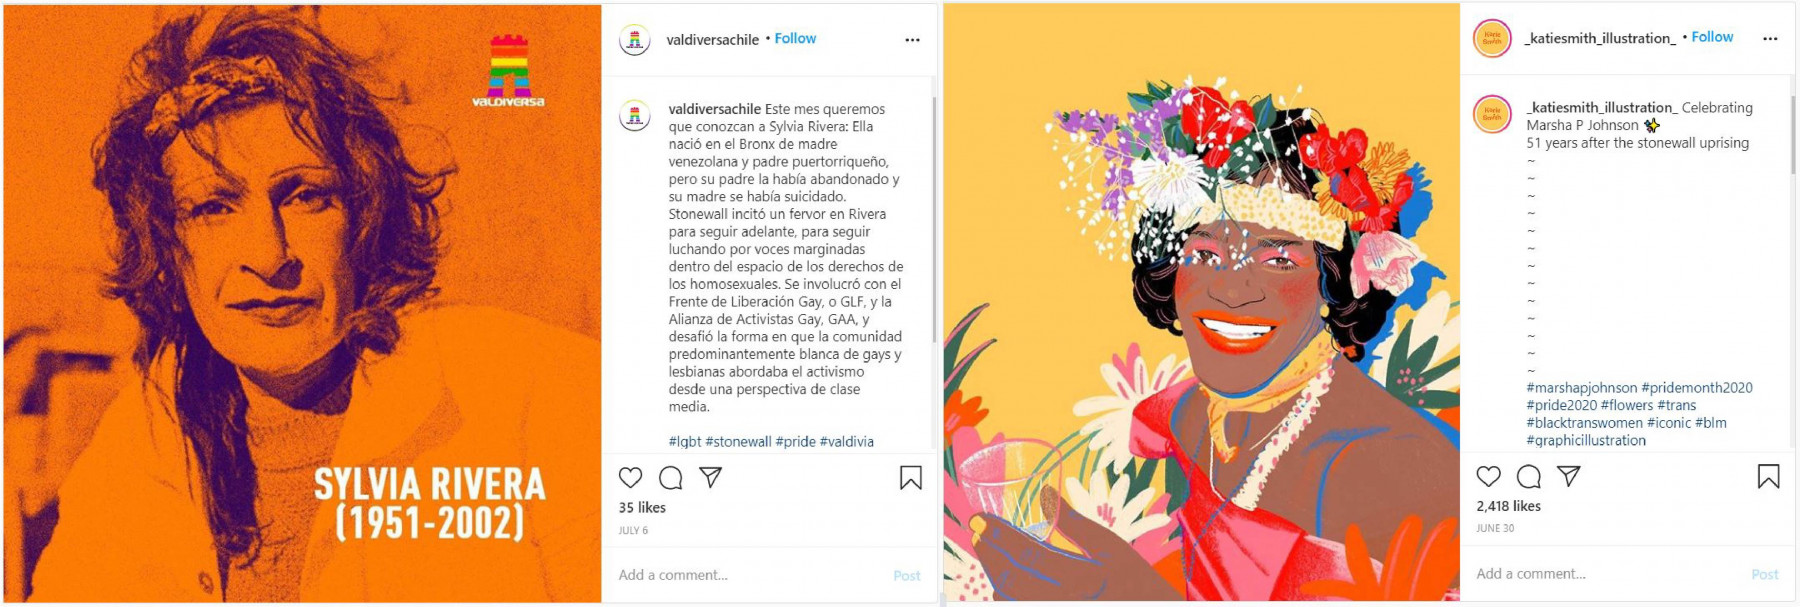 Aktivist:innen Sylvia Rivera und Marsha P. Johnson Instagram pressrelations